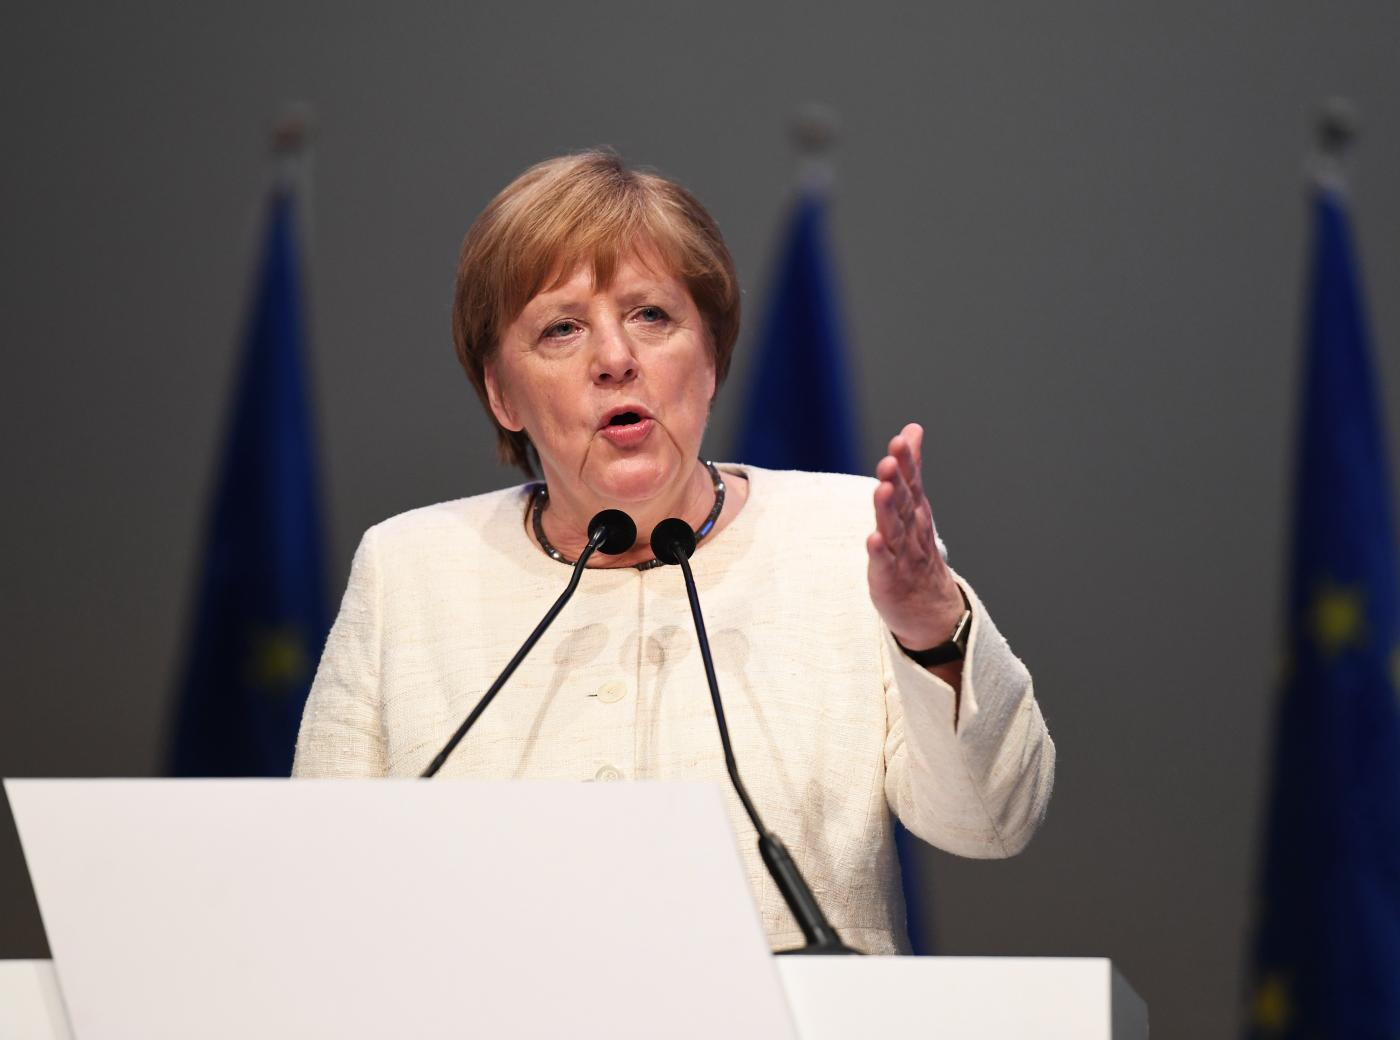 "MUNICH, May 24, 2019 (Xinhua) -- German Chancellor Angela Merkel speaks during Manfred Weber's last campaign rally ahead of the election in Munich, Germany, on May 24, 2019. ""Europe stands for security and prosperity,"" Manfred Weber, top candidate of the European People's Party (EPP) for the European elections, said here Friday, calling on voters to defend Europe against nationalism. (Xinhua/Lu Yang/IANS) by ."